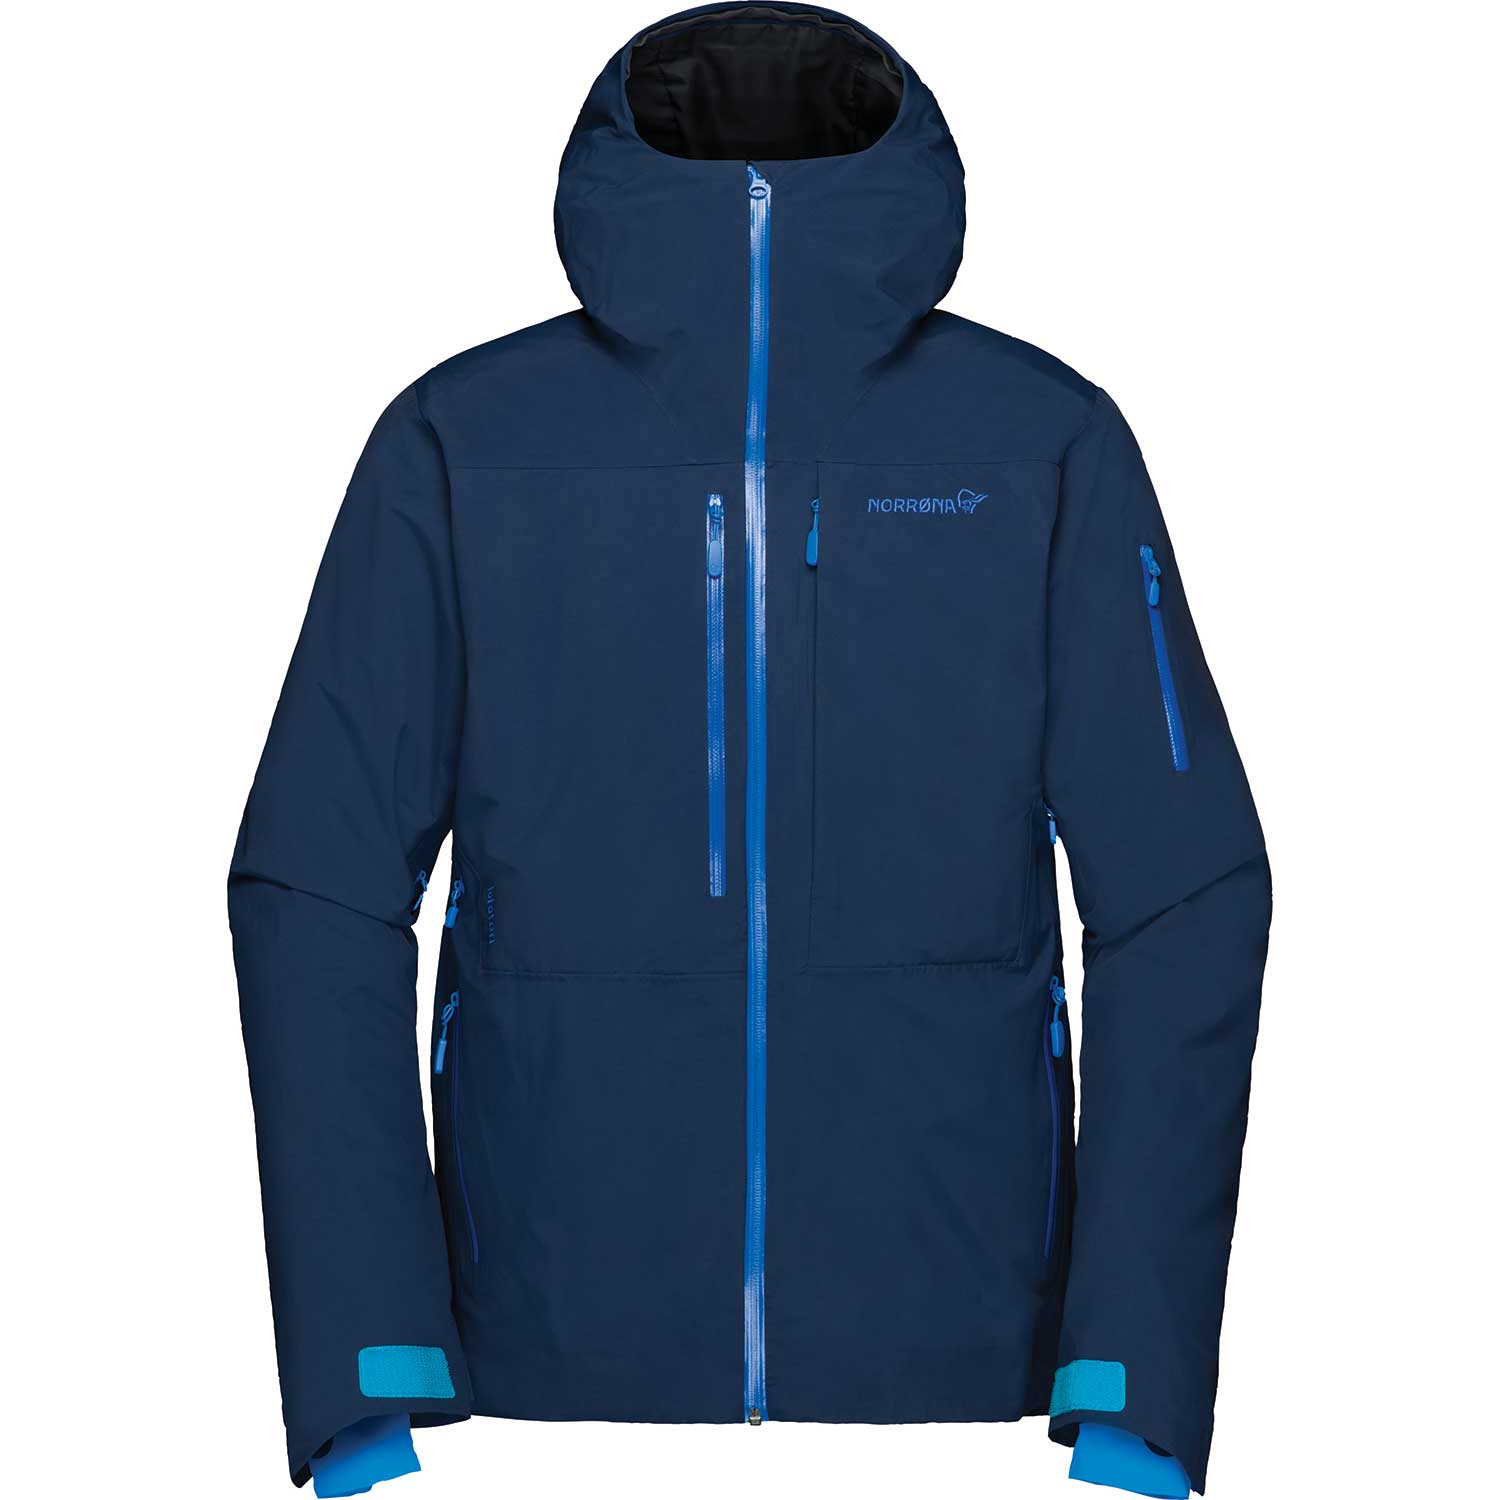 lofoten Gore-Tex insulated Jacket (M)